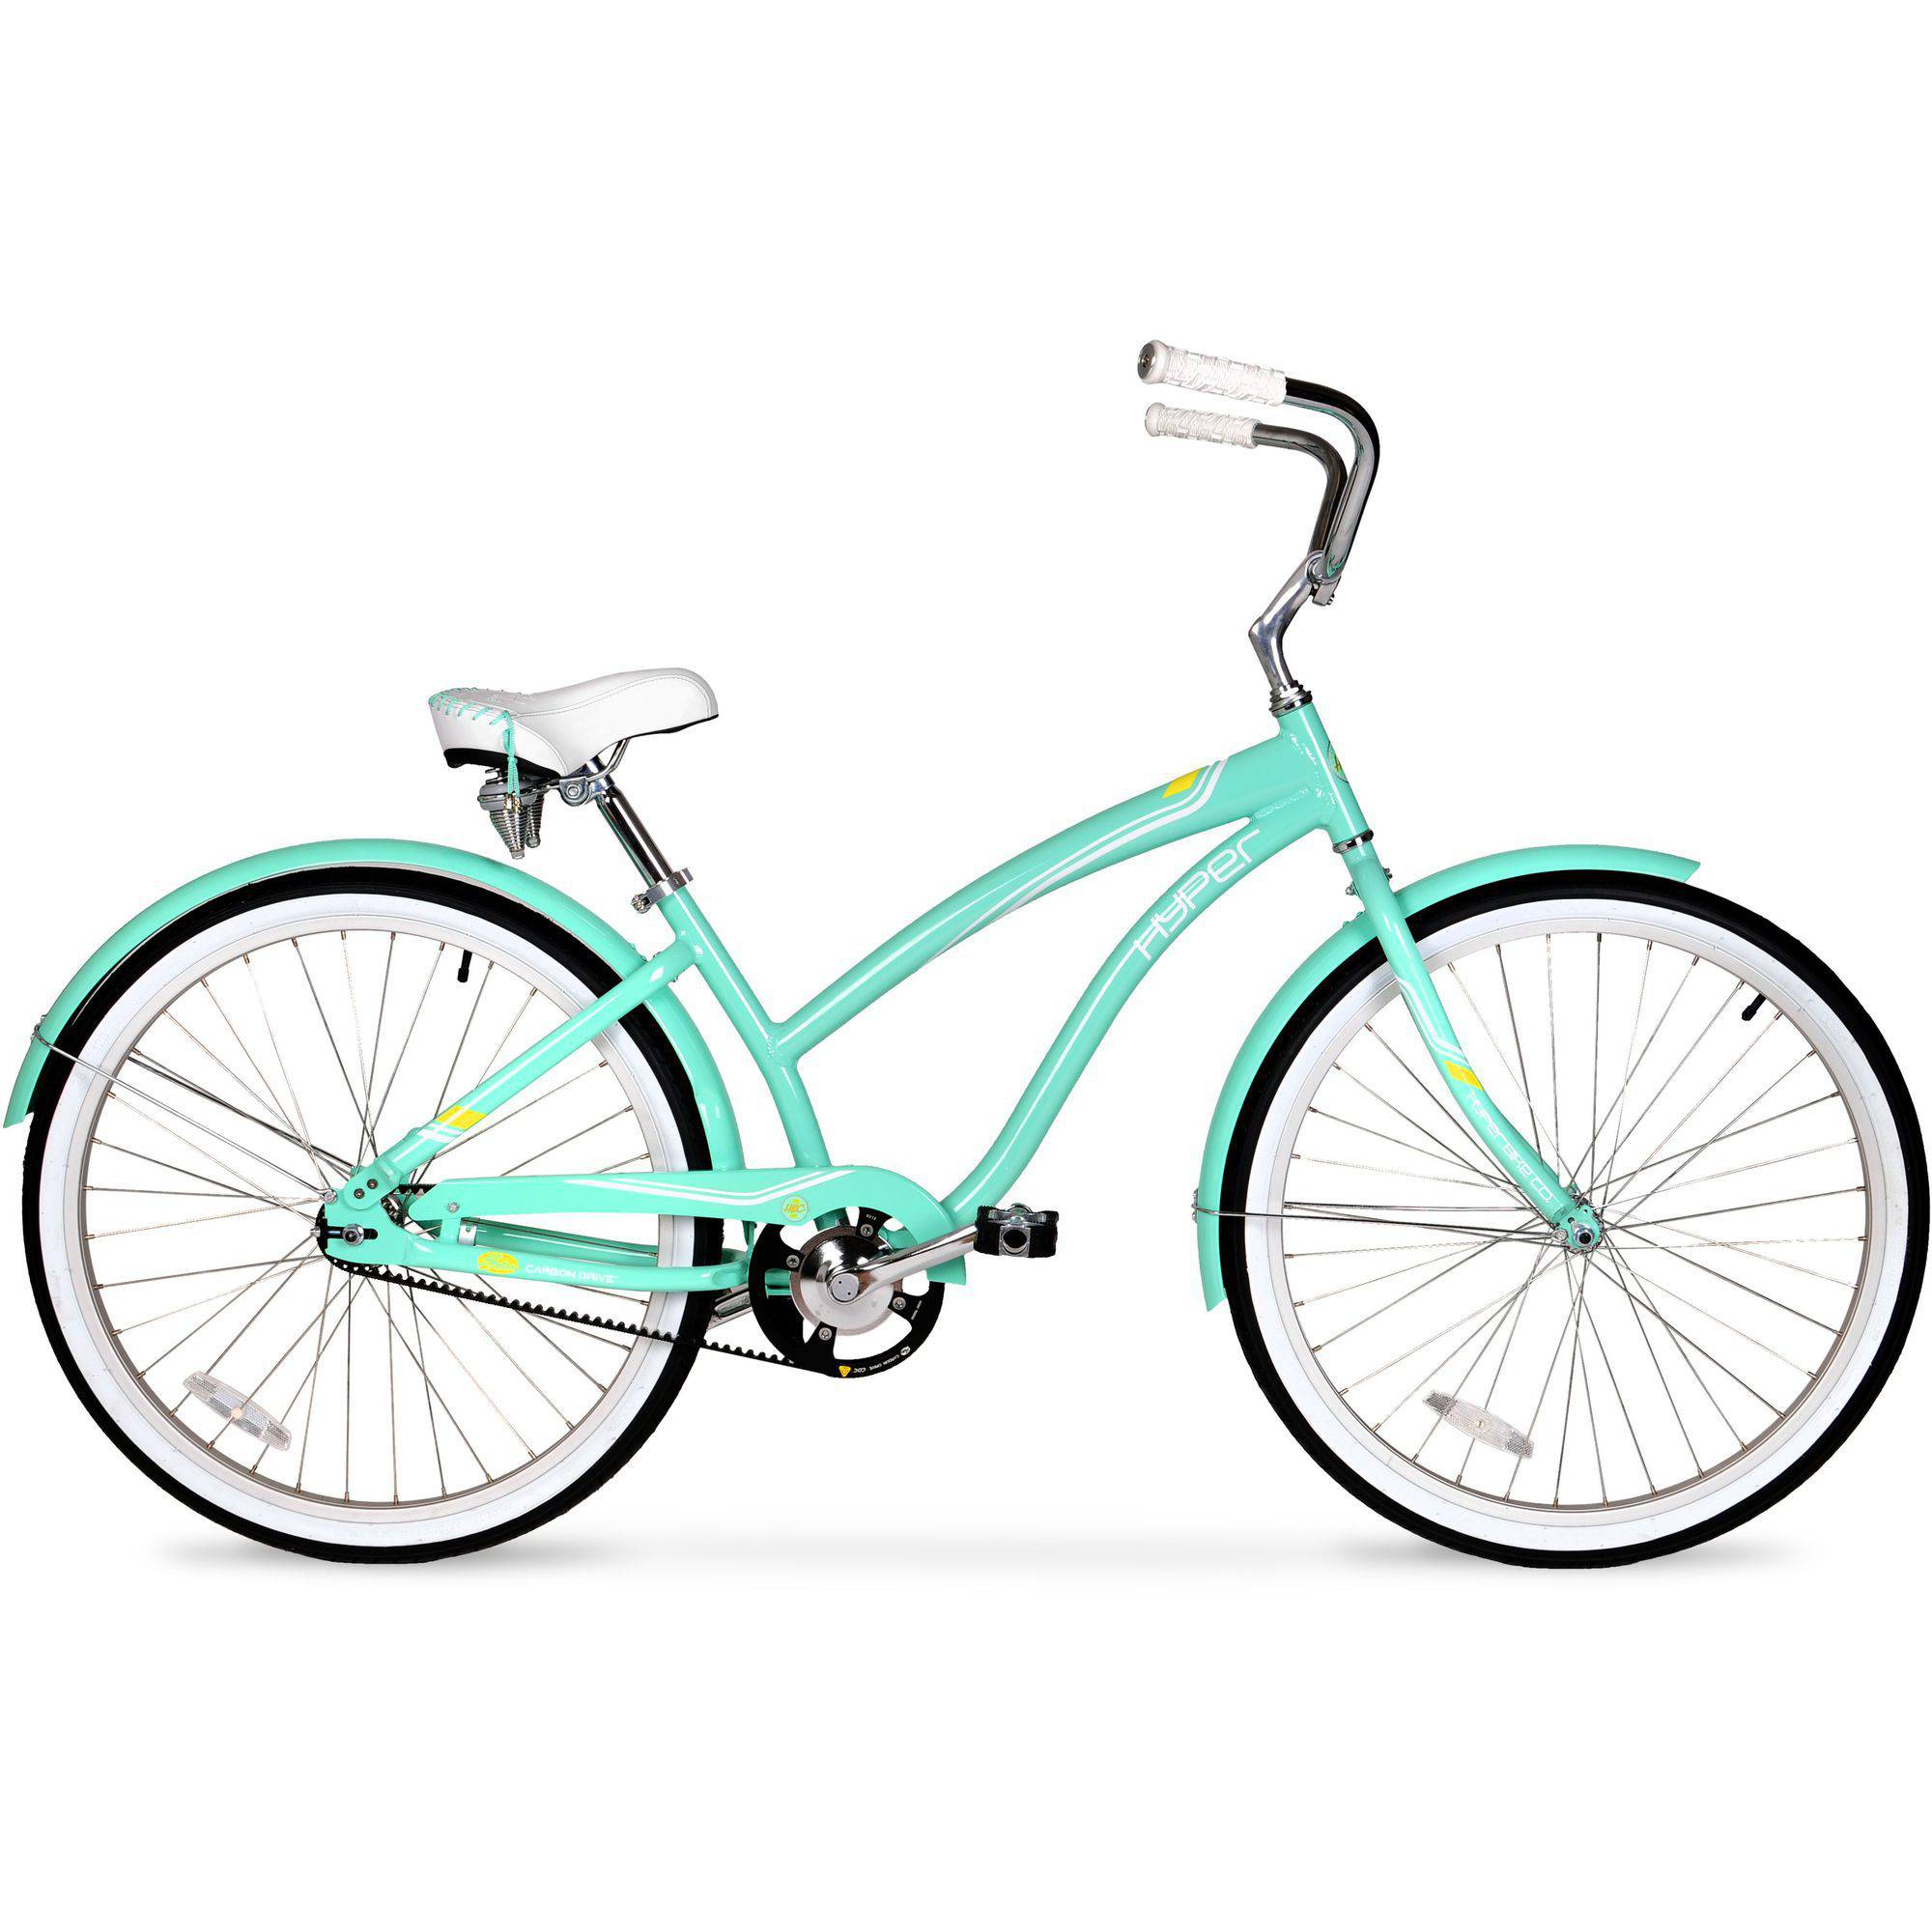 "26"" Women's Hyper HBC Belt Drive Bike, Seafoam Green"